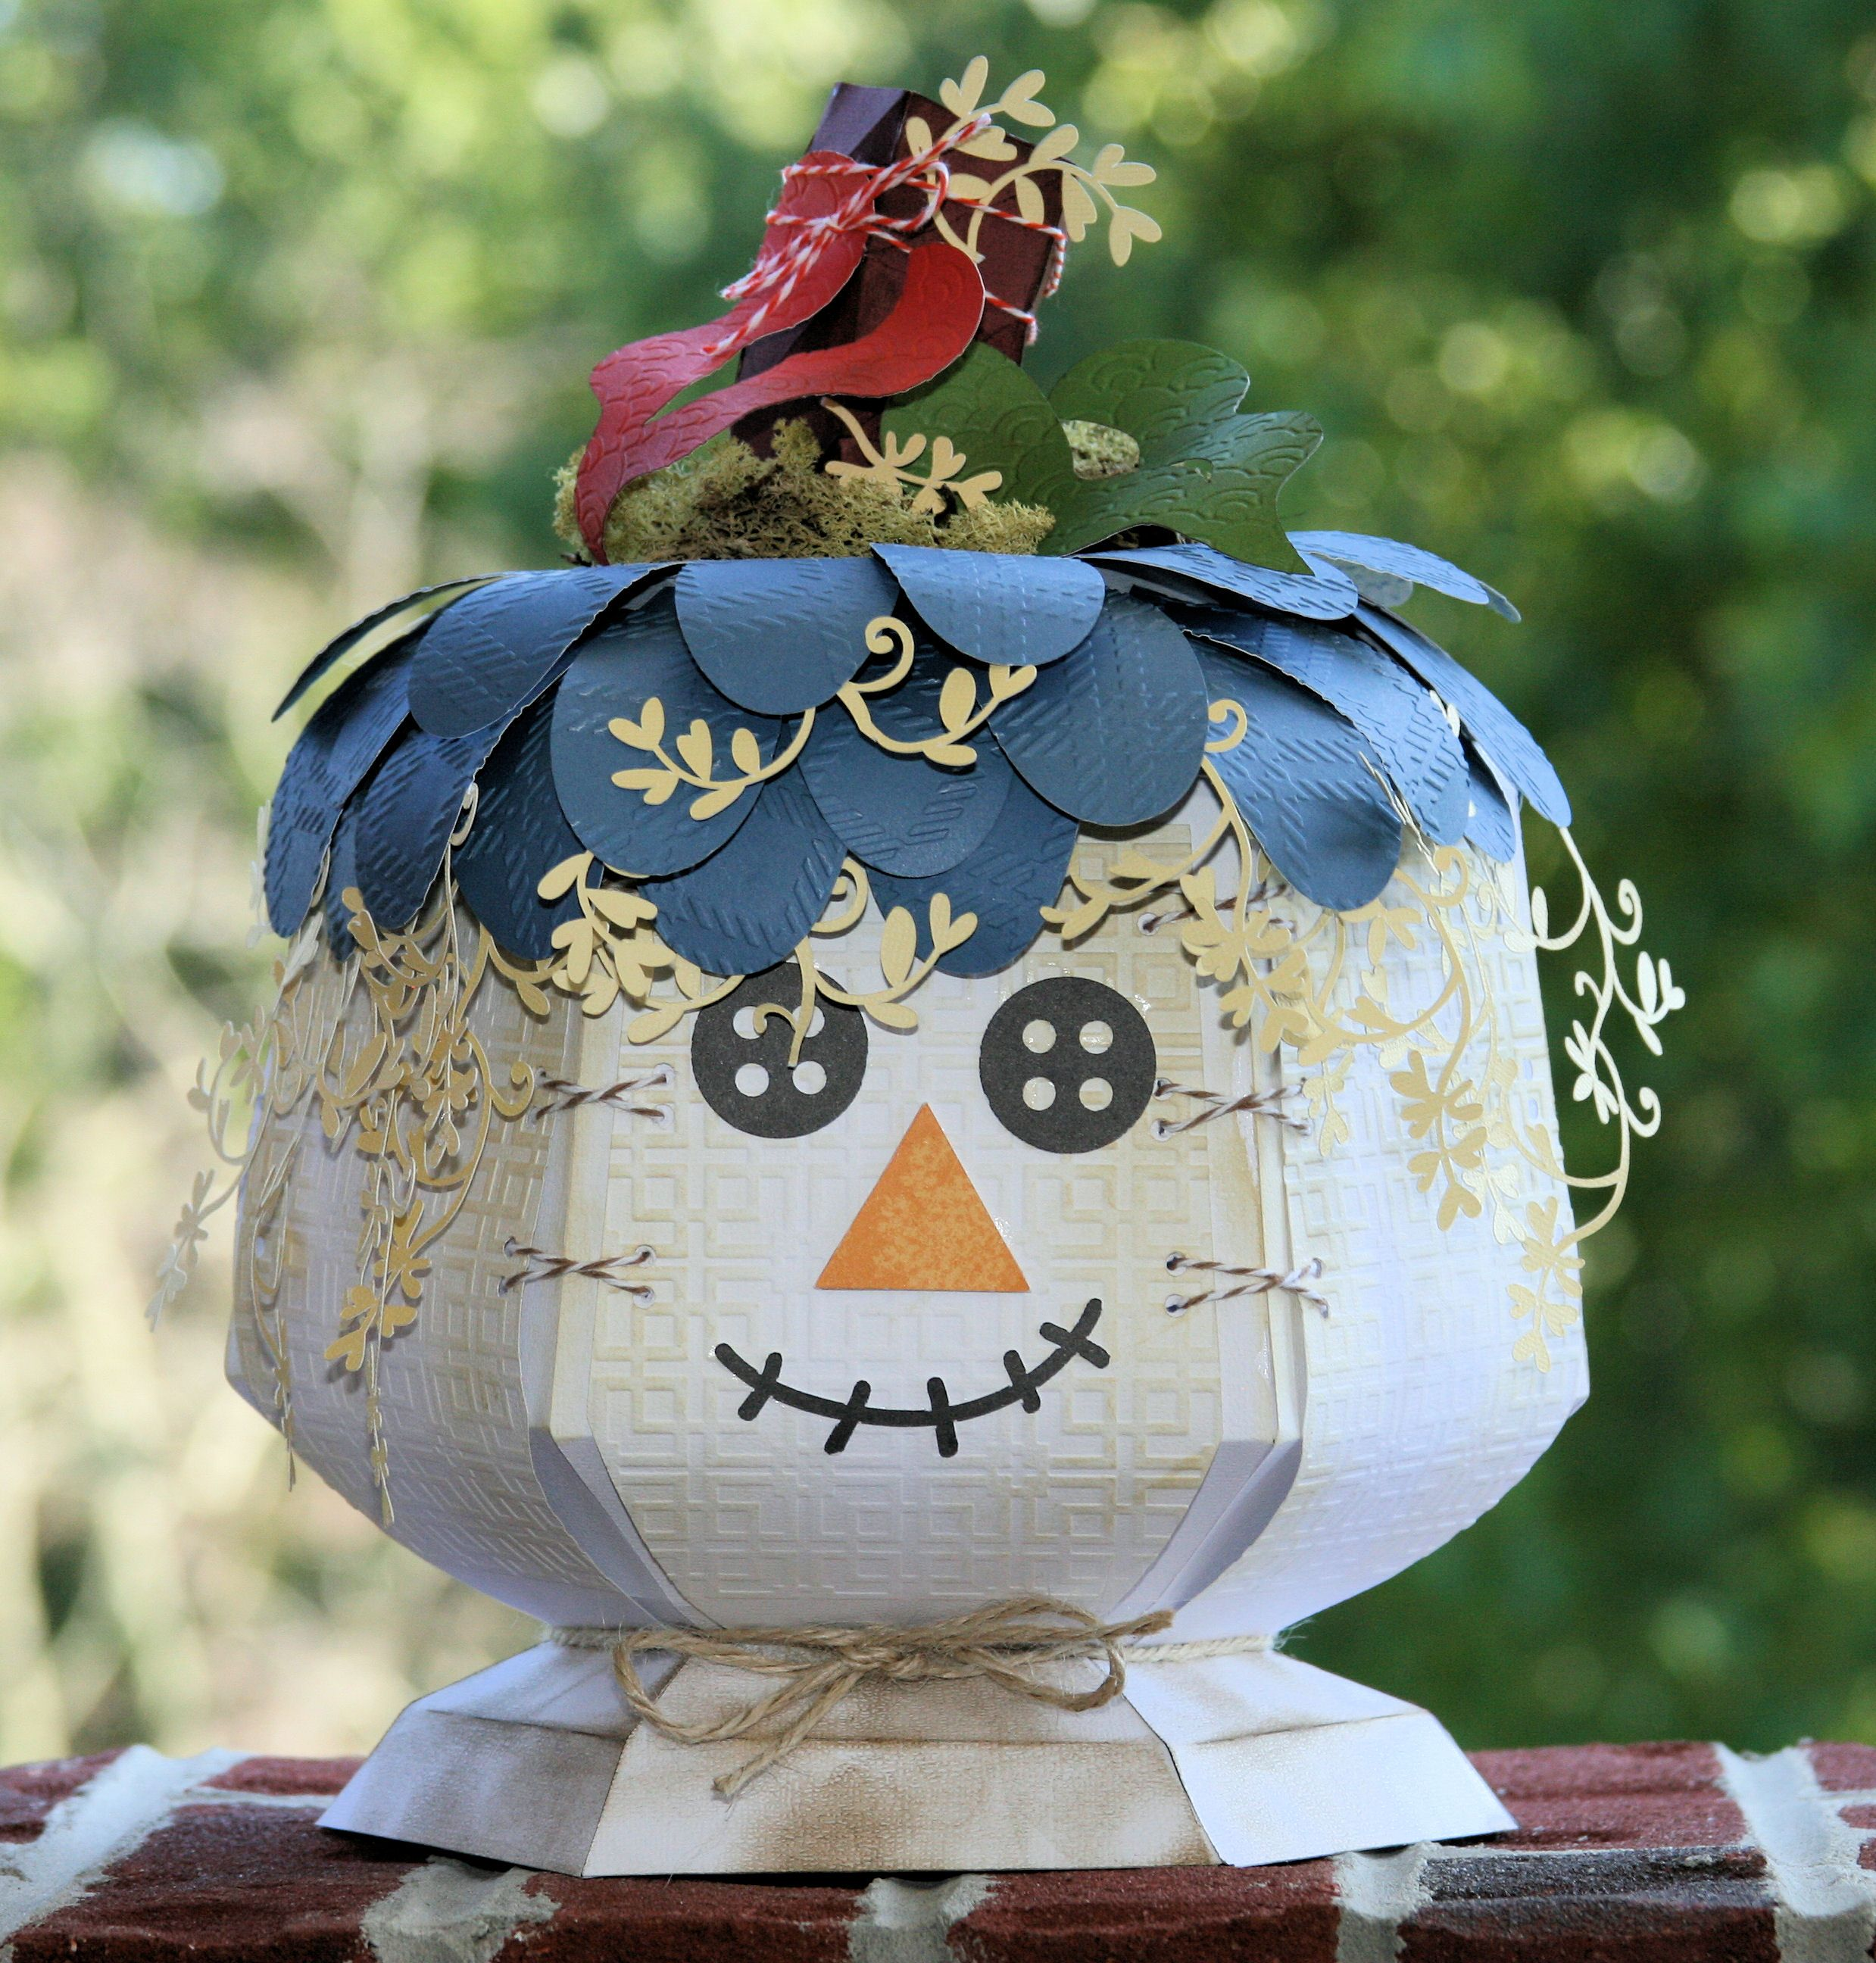 . Pumpkin from a SVG Cuts kit. Another use for the caldron